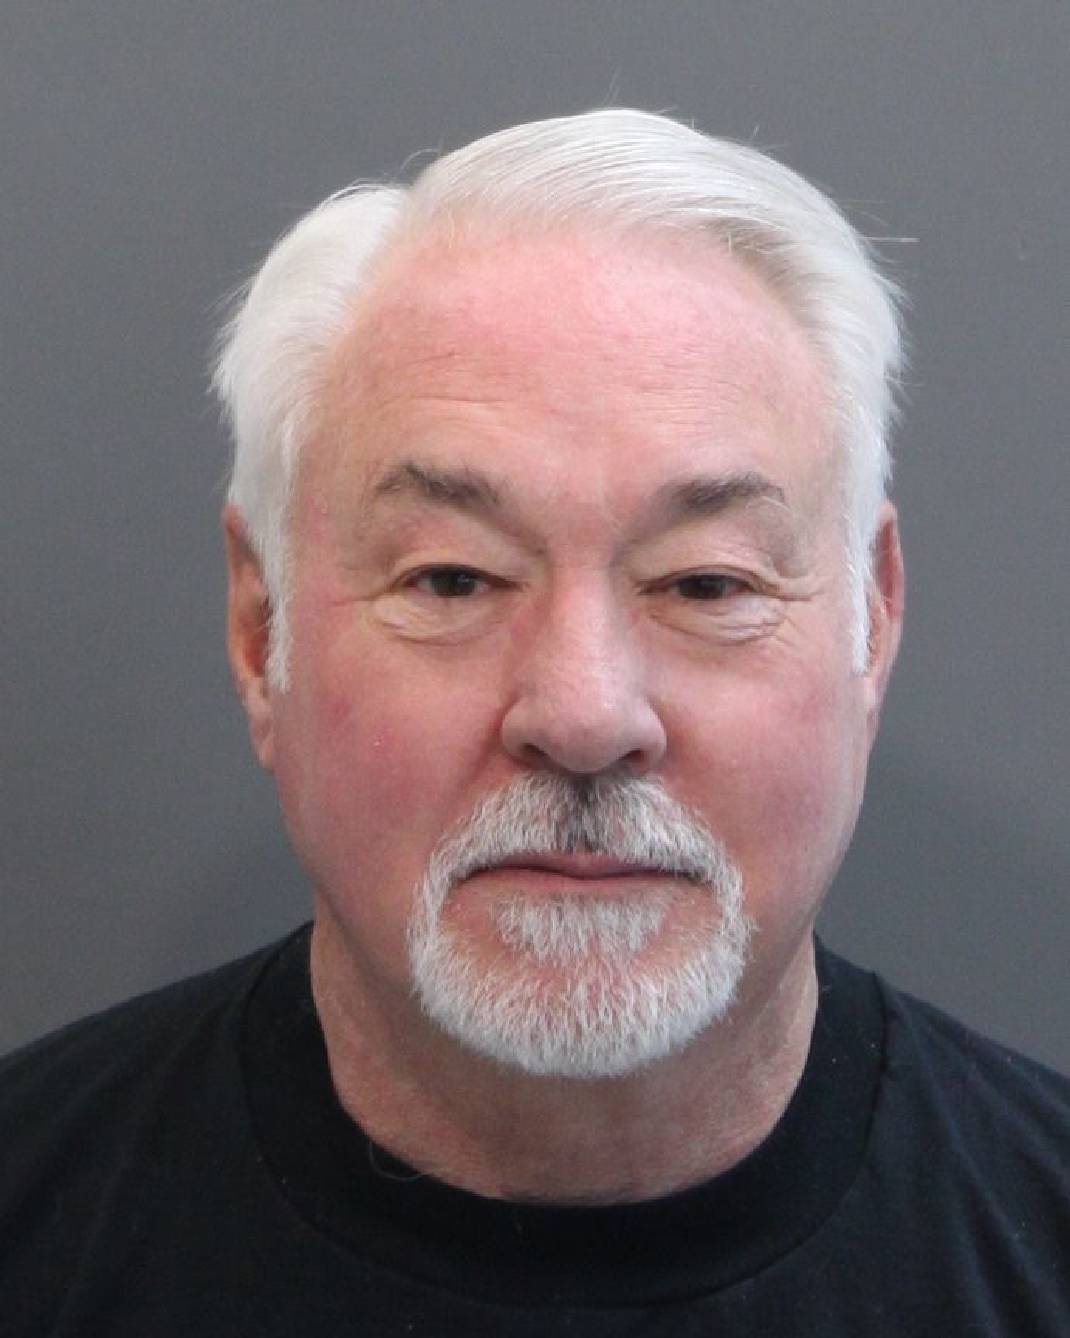 70-year-old owner of gay bar pleads guilty in court